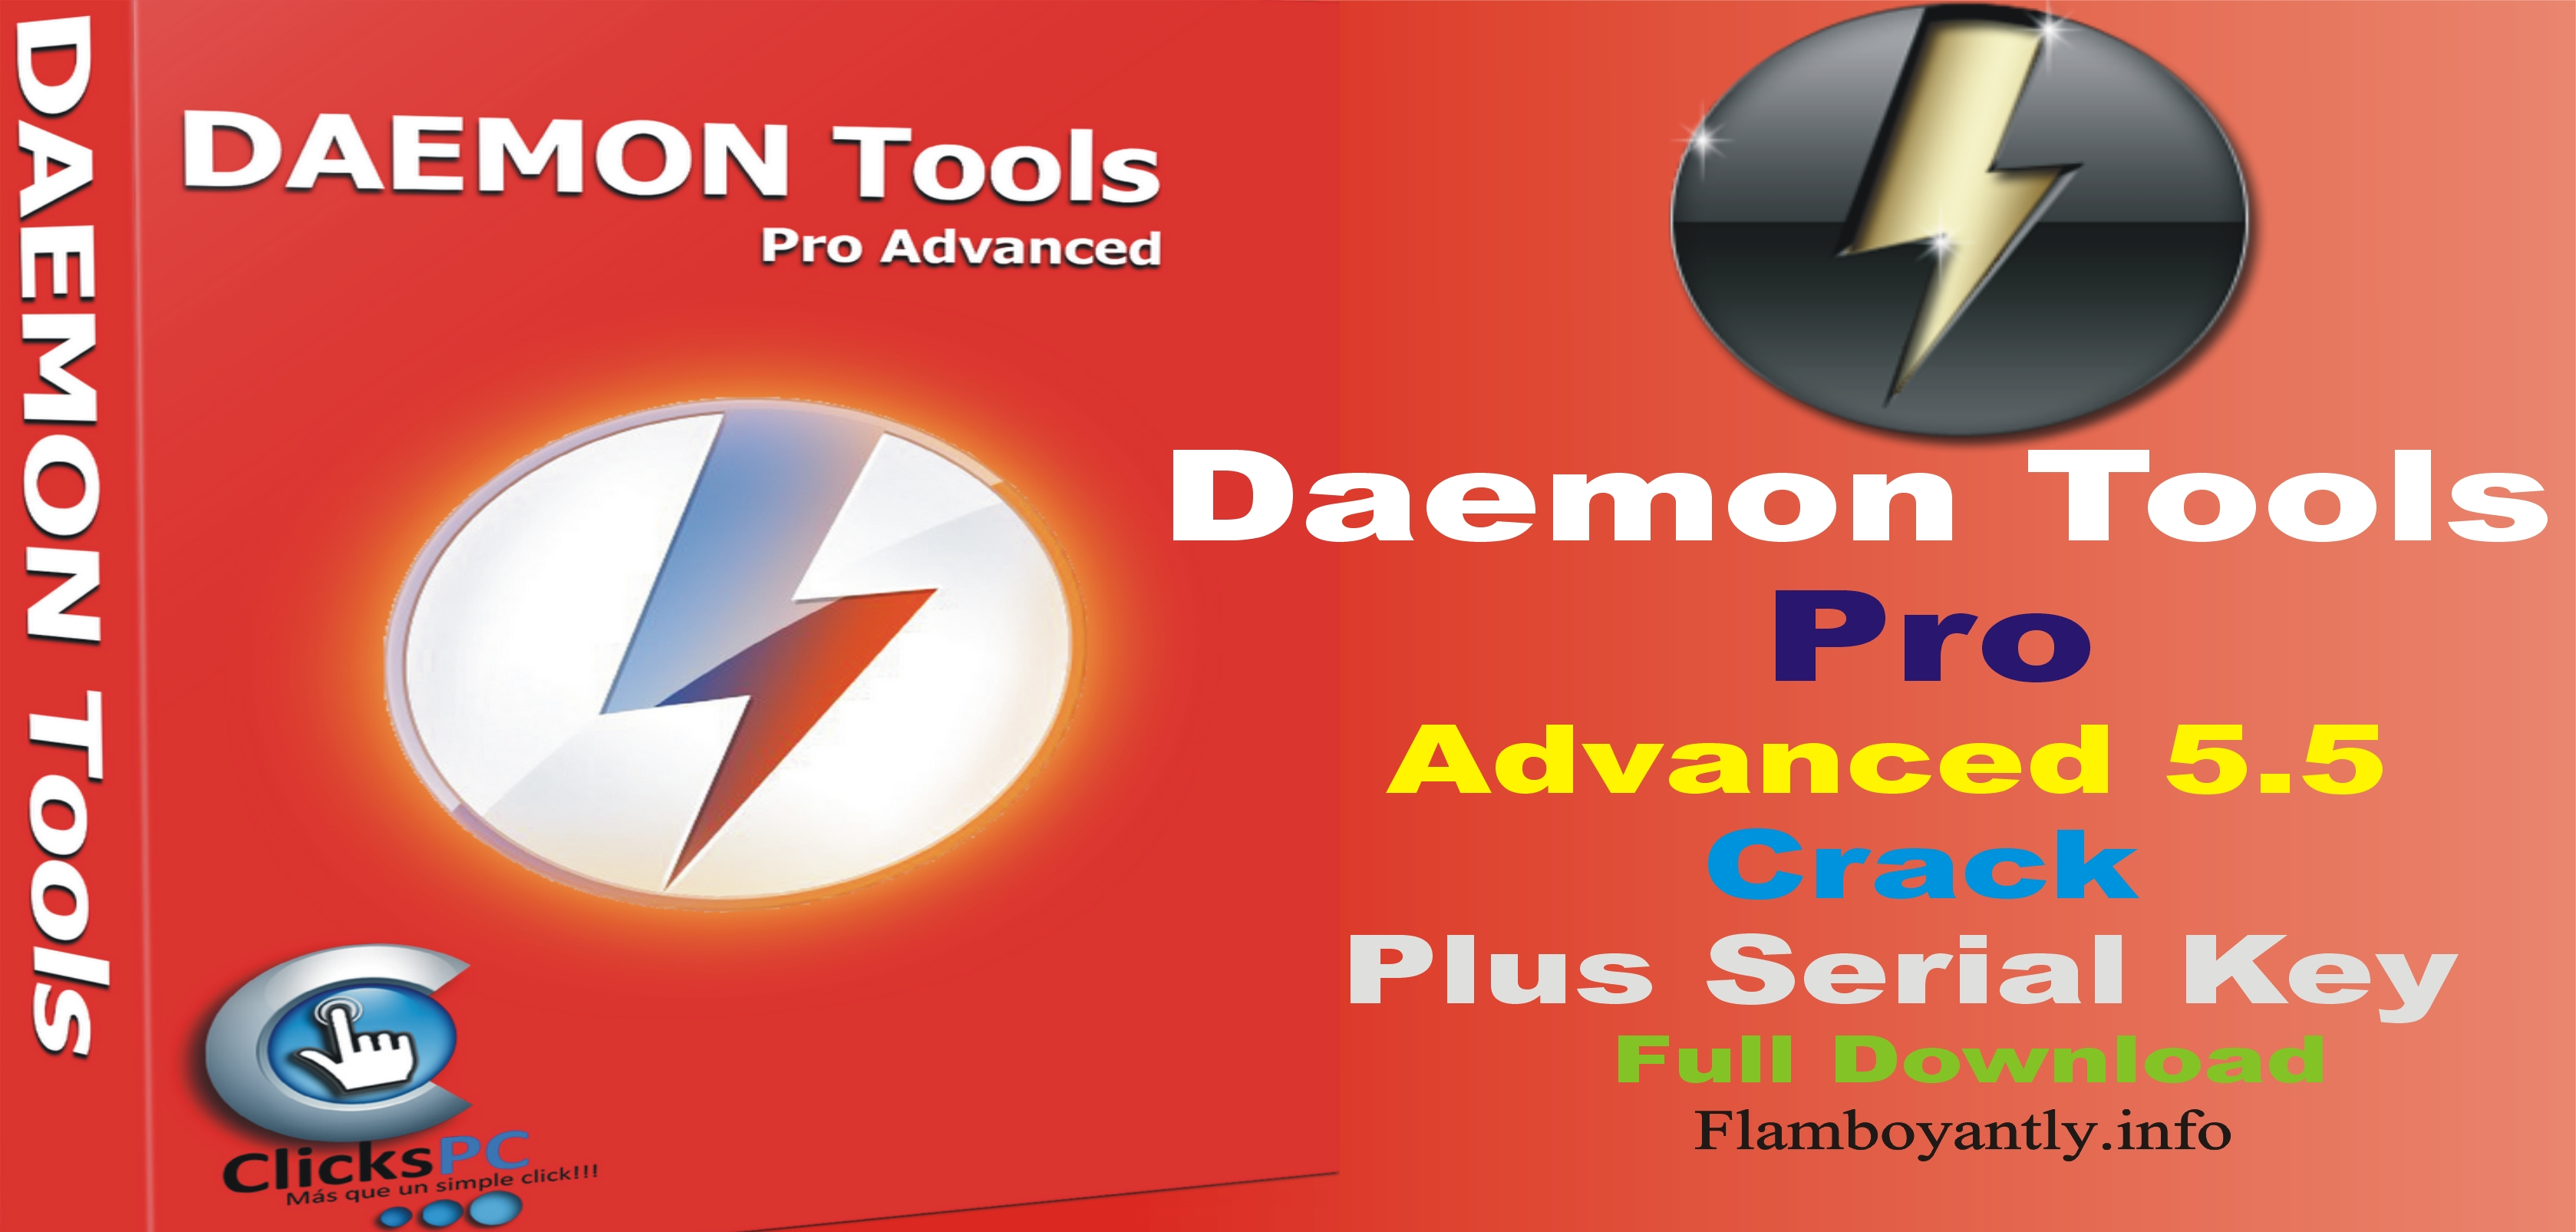 Daemon Tools Pro Advanced 5.5 Crack Plus Serial Key Full Download